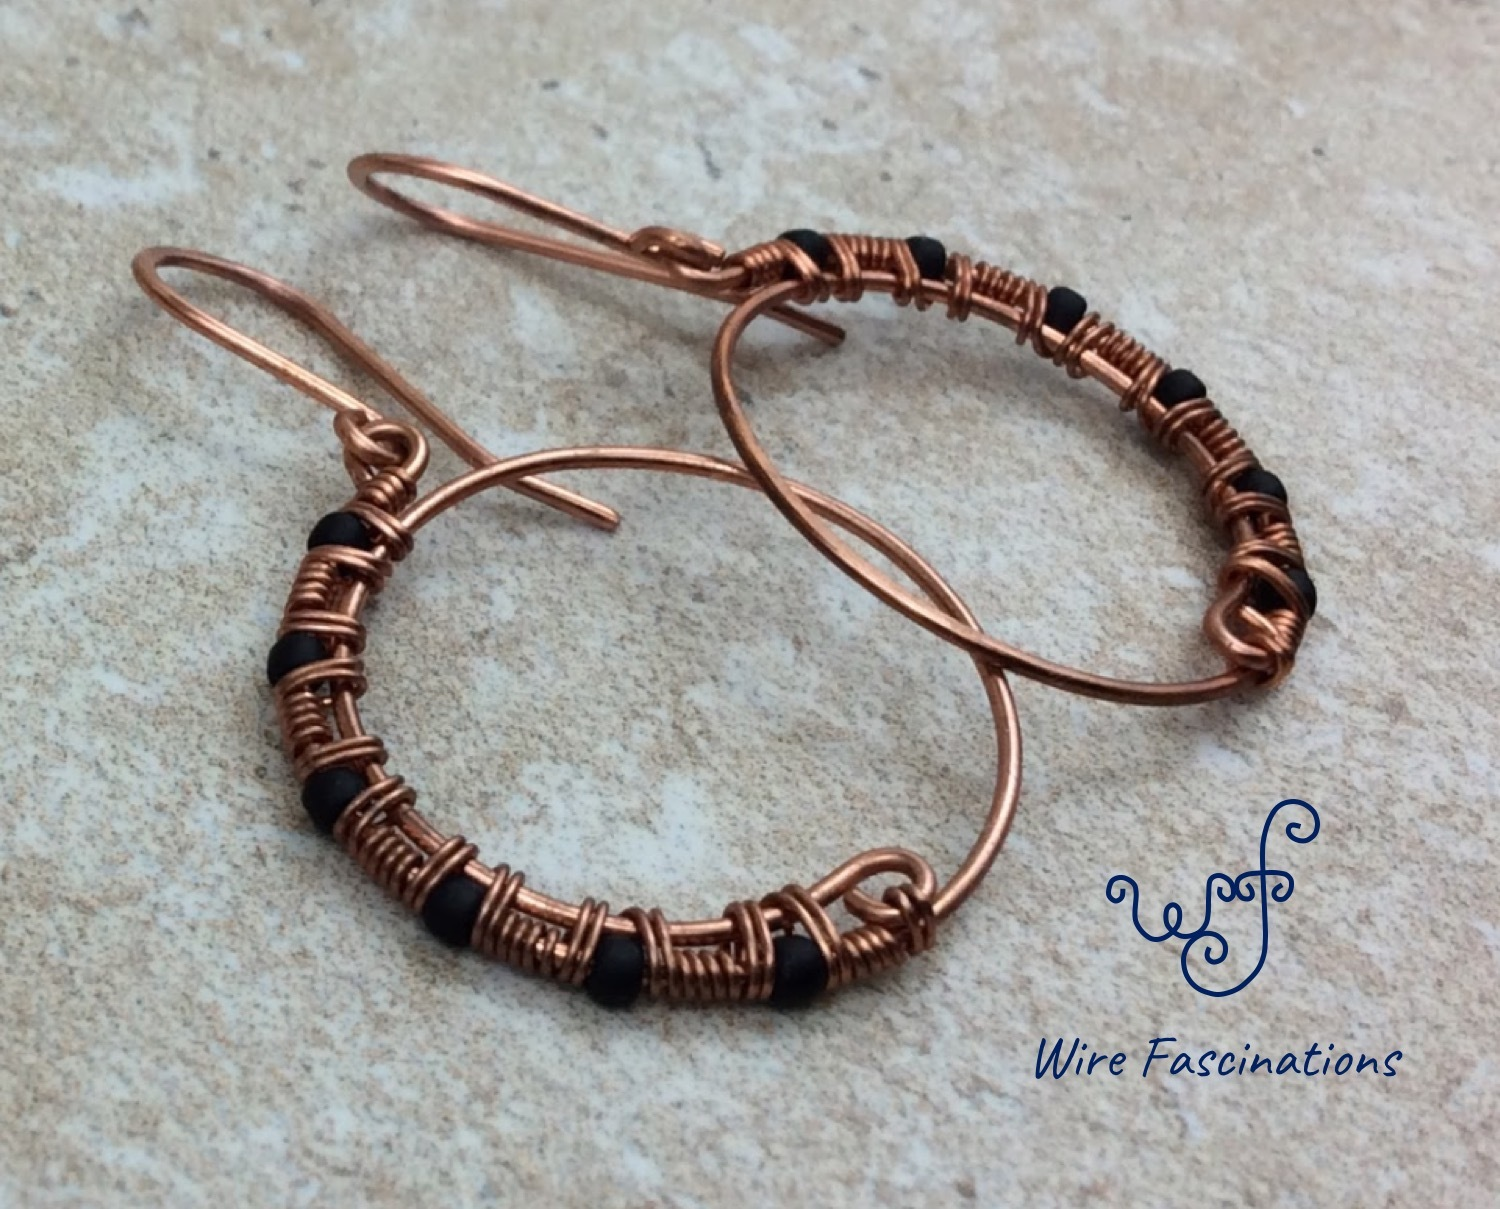 Handmade copper earrings: hoops half wire wrapped with matte black glass beads